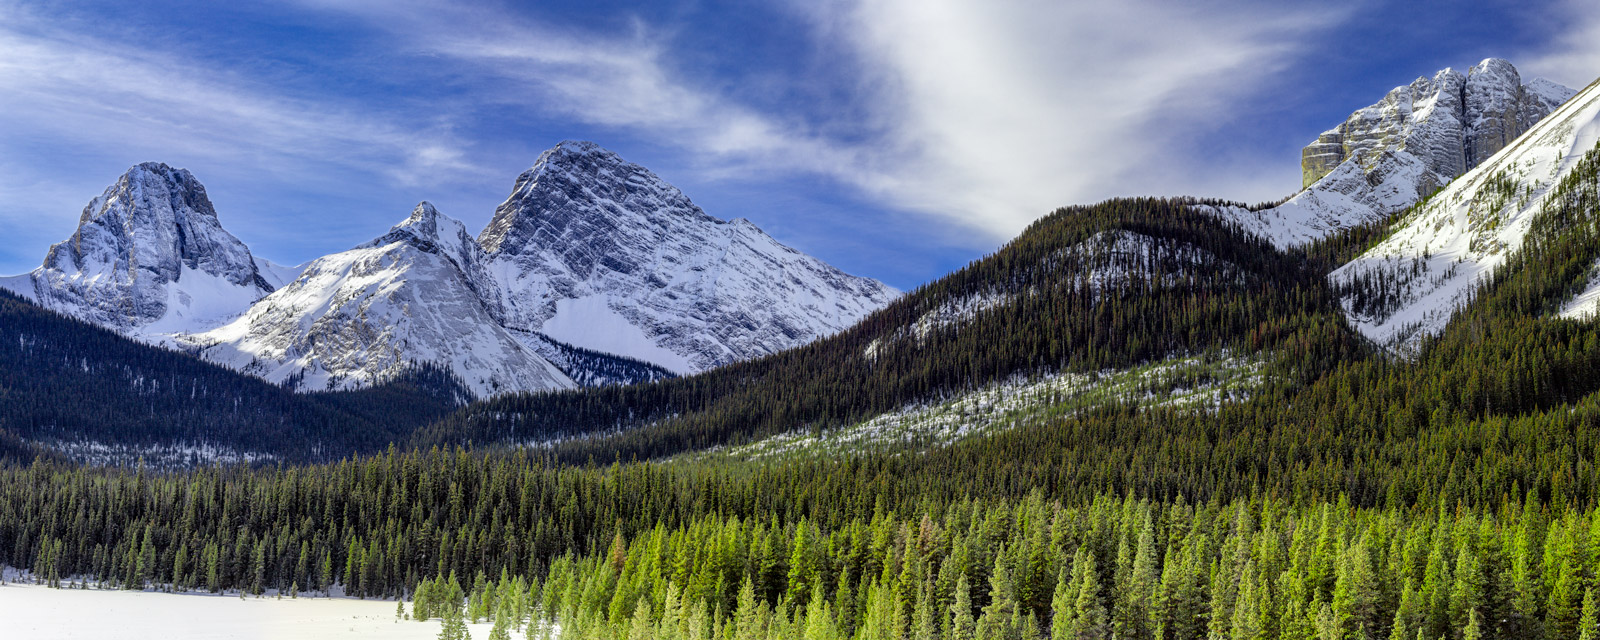 Alberta, Canada, Canadian, Rockies, Mountain, Winter, Snow covered, limited edition, photograph, fine art, landscape, photo